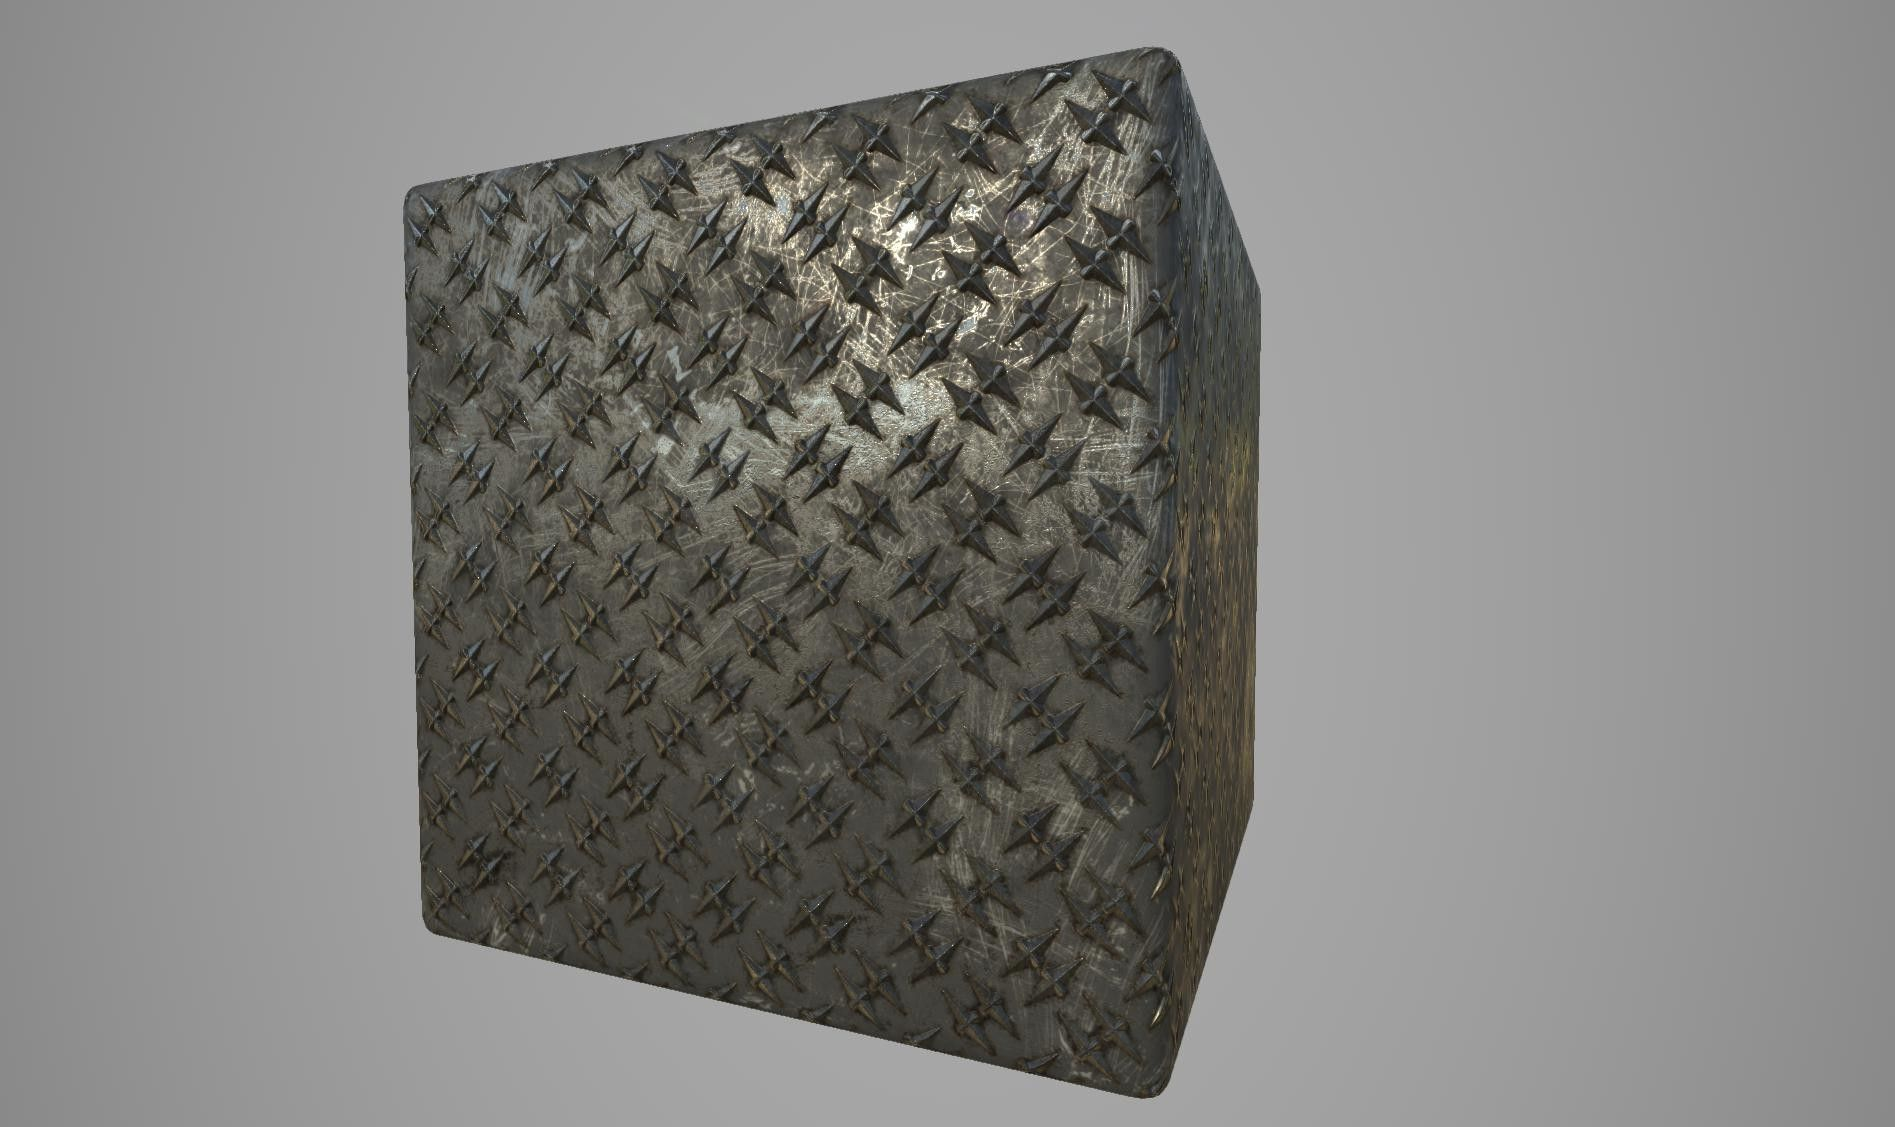 ArtStation - Diamond Plate Metal / Substance Designer, Nestor Carpintero